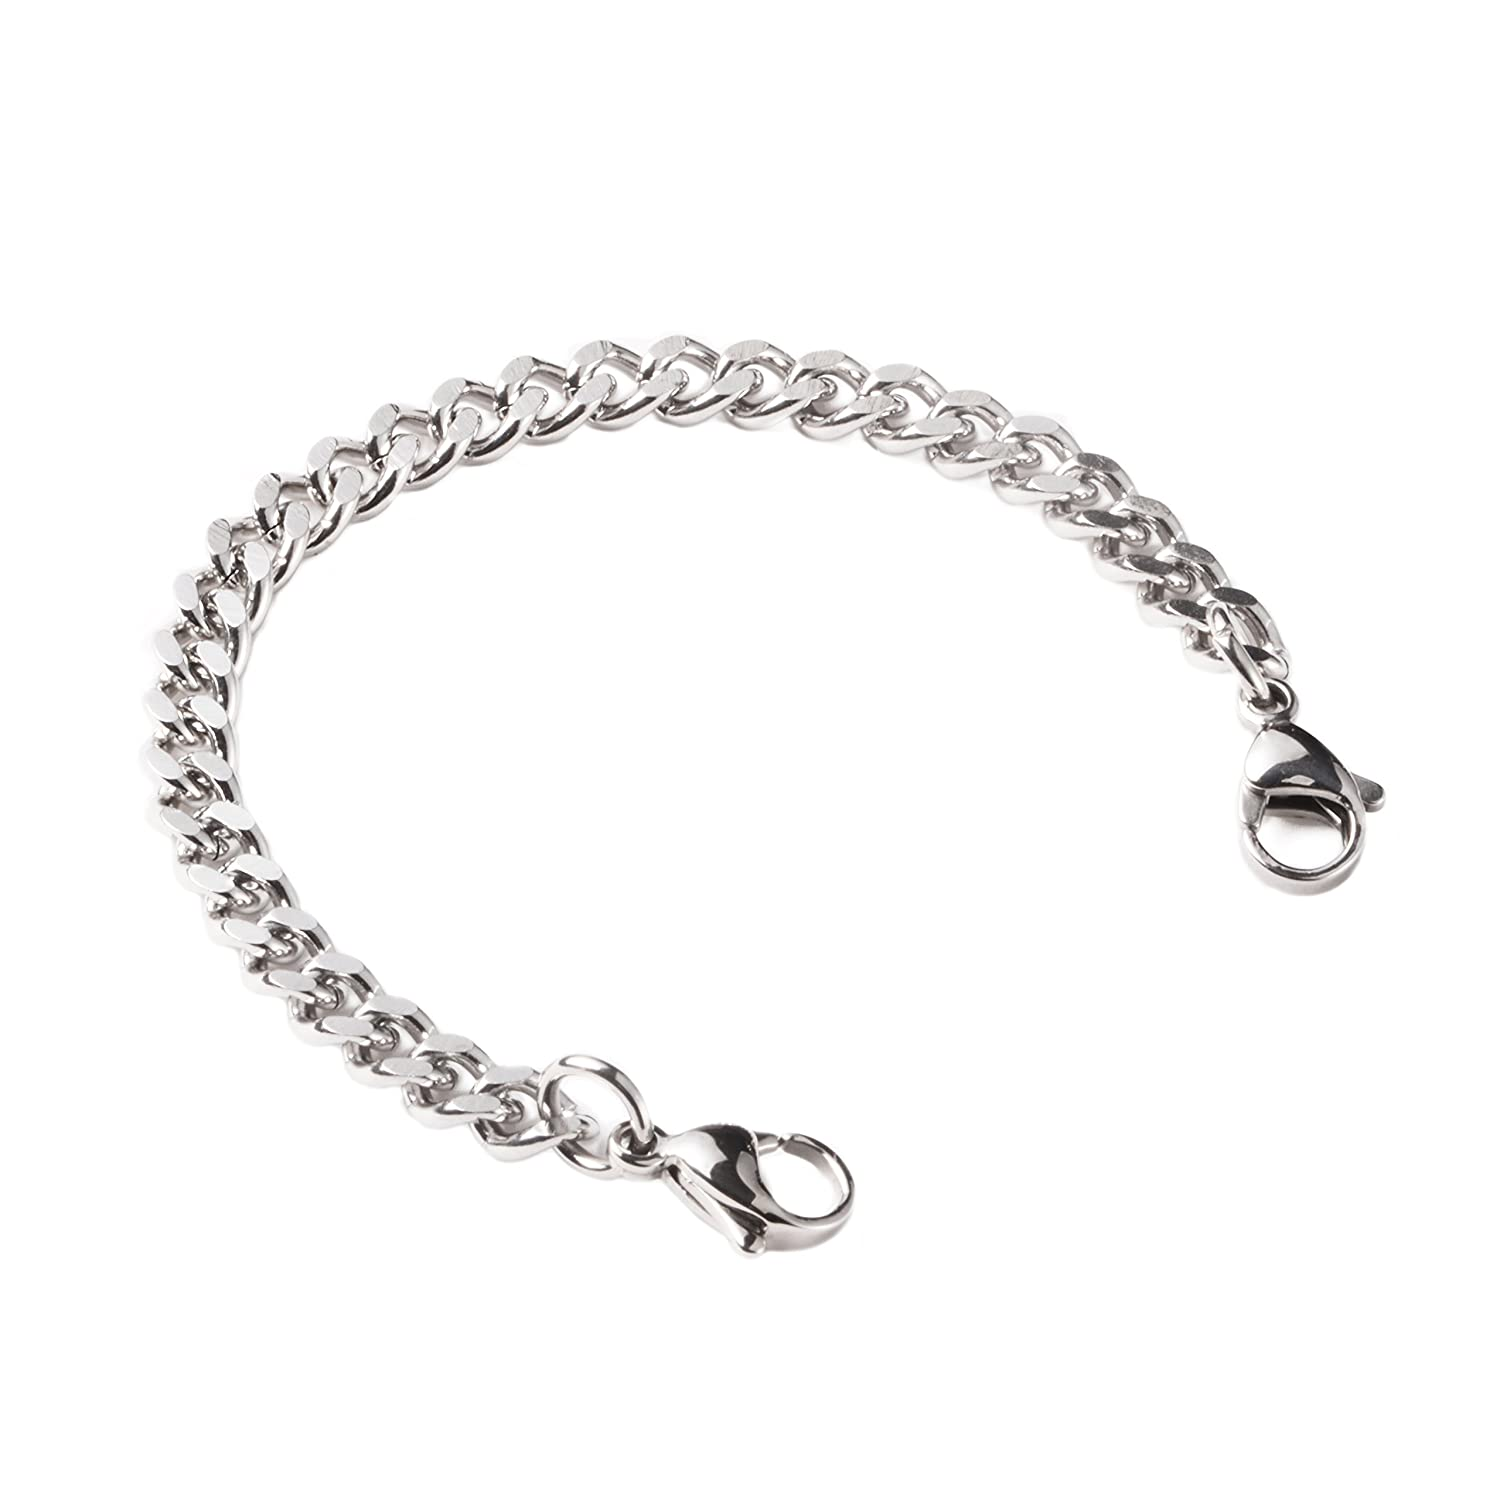 valuable with silver picture hidden bangles charms heart charm hollow idea remarkable initial bracelet of argentium beads ss bangle bracelets thin set archives interchangeable